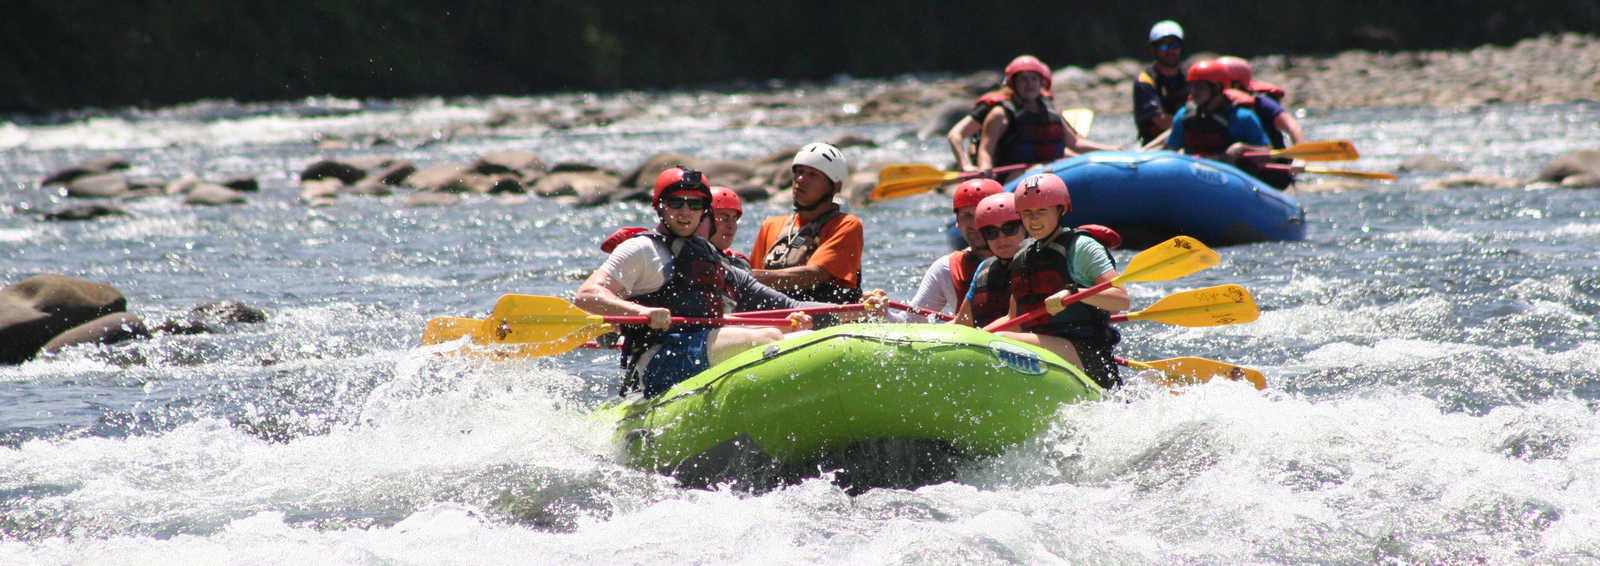 Sarapiqui river rafting, Costa Rica